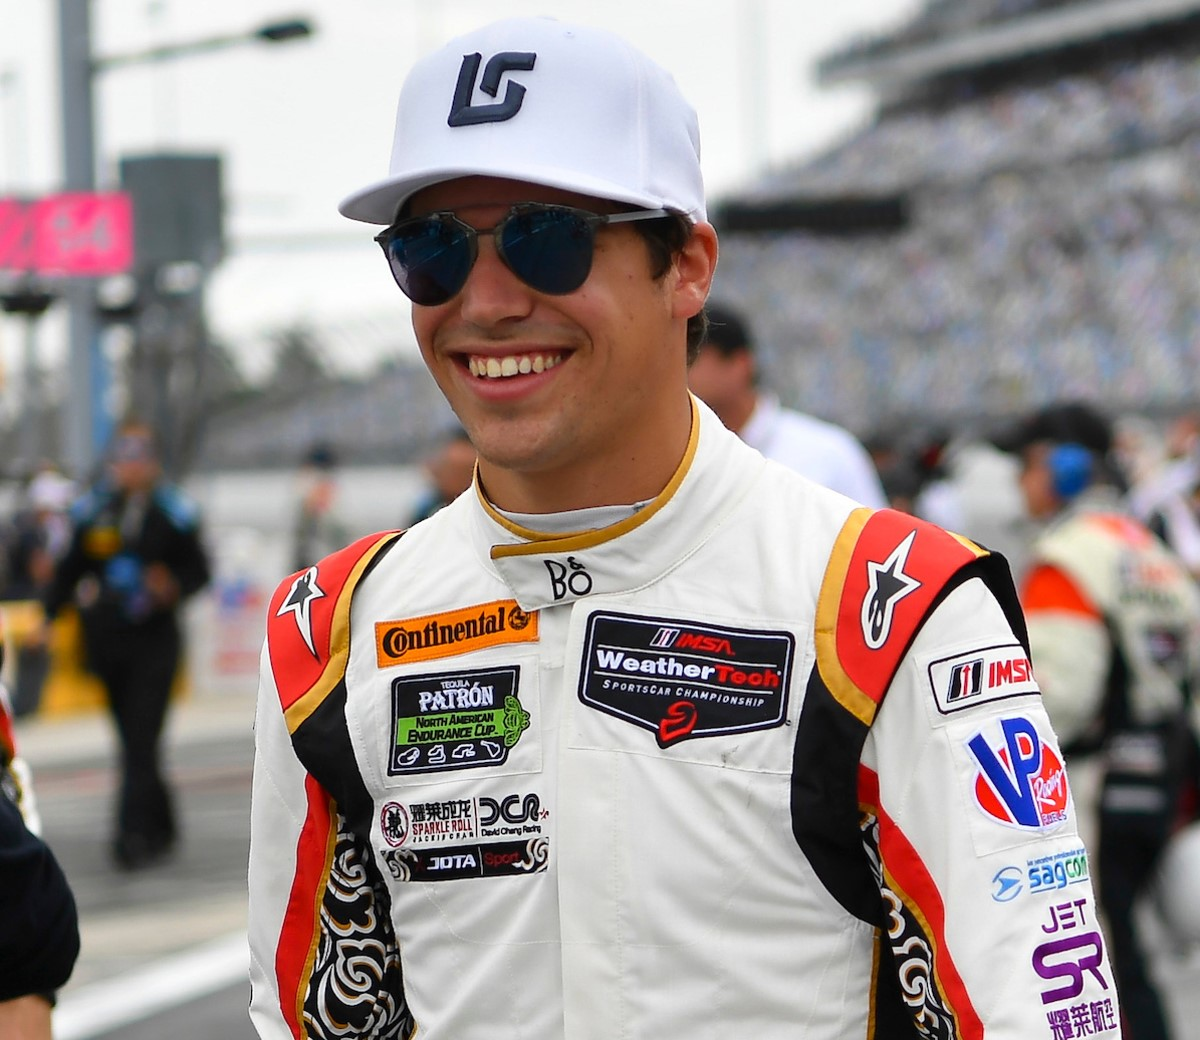 Lance Stroll - daddy's money will be very good for Force India